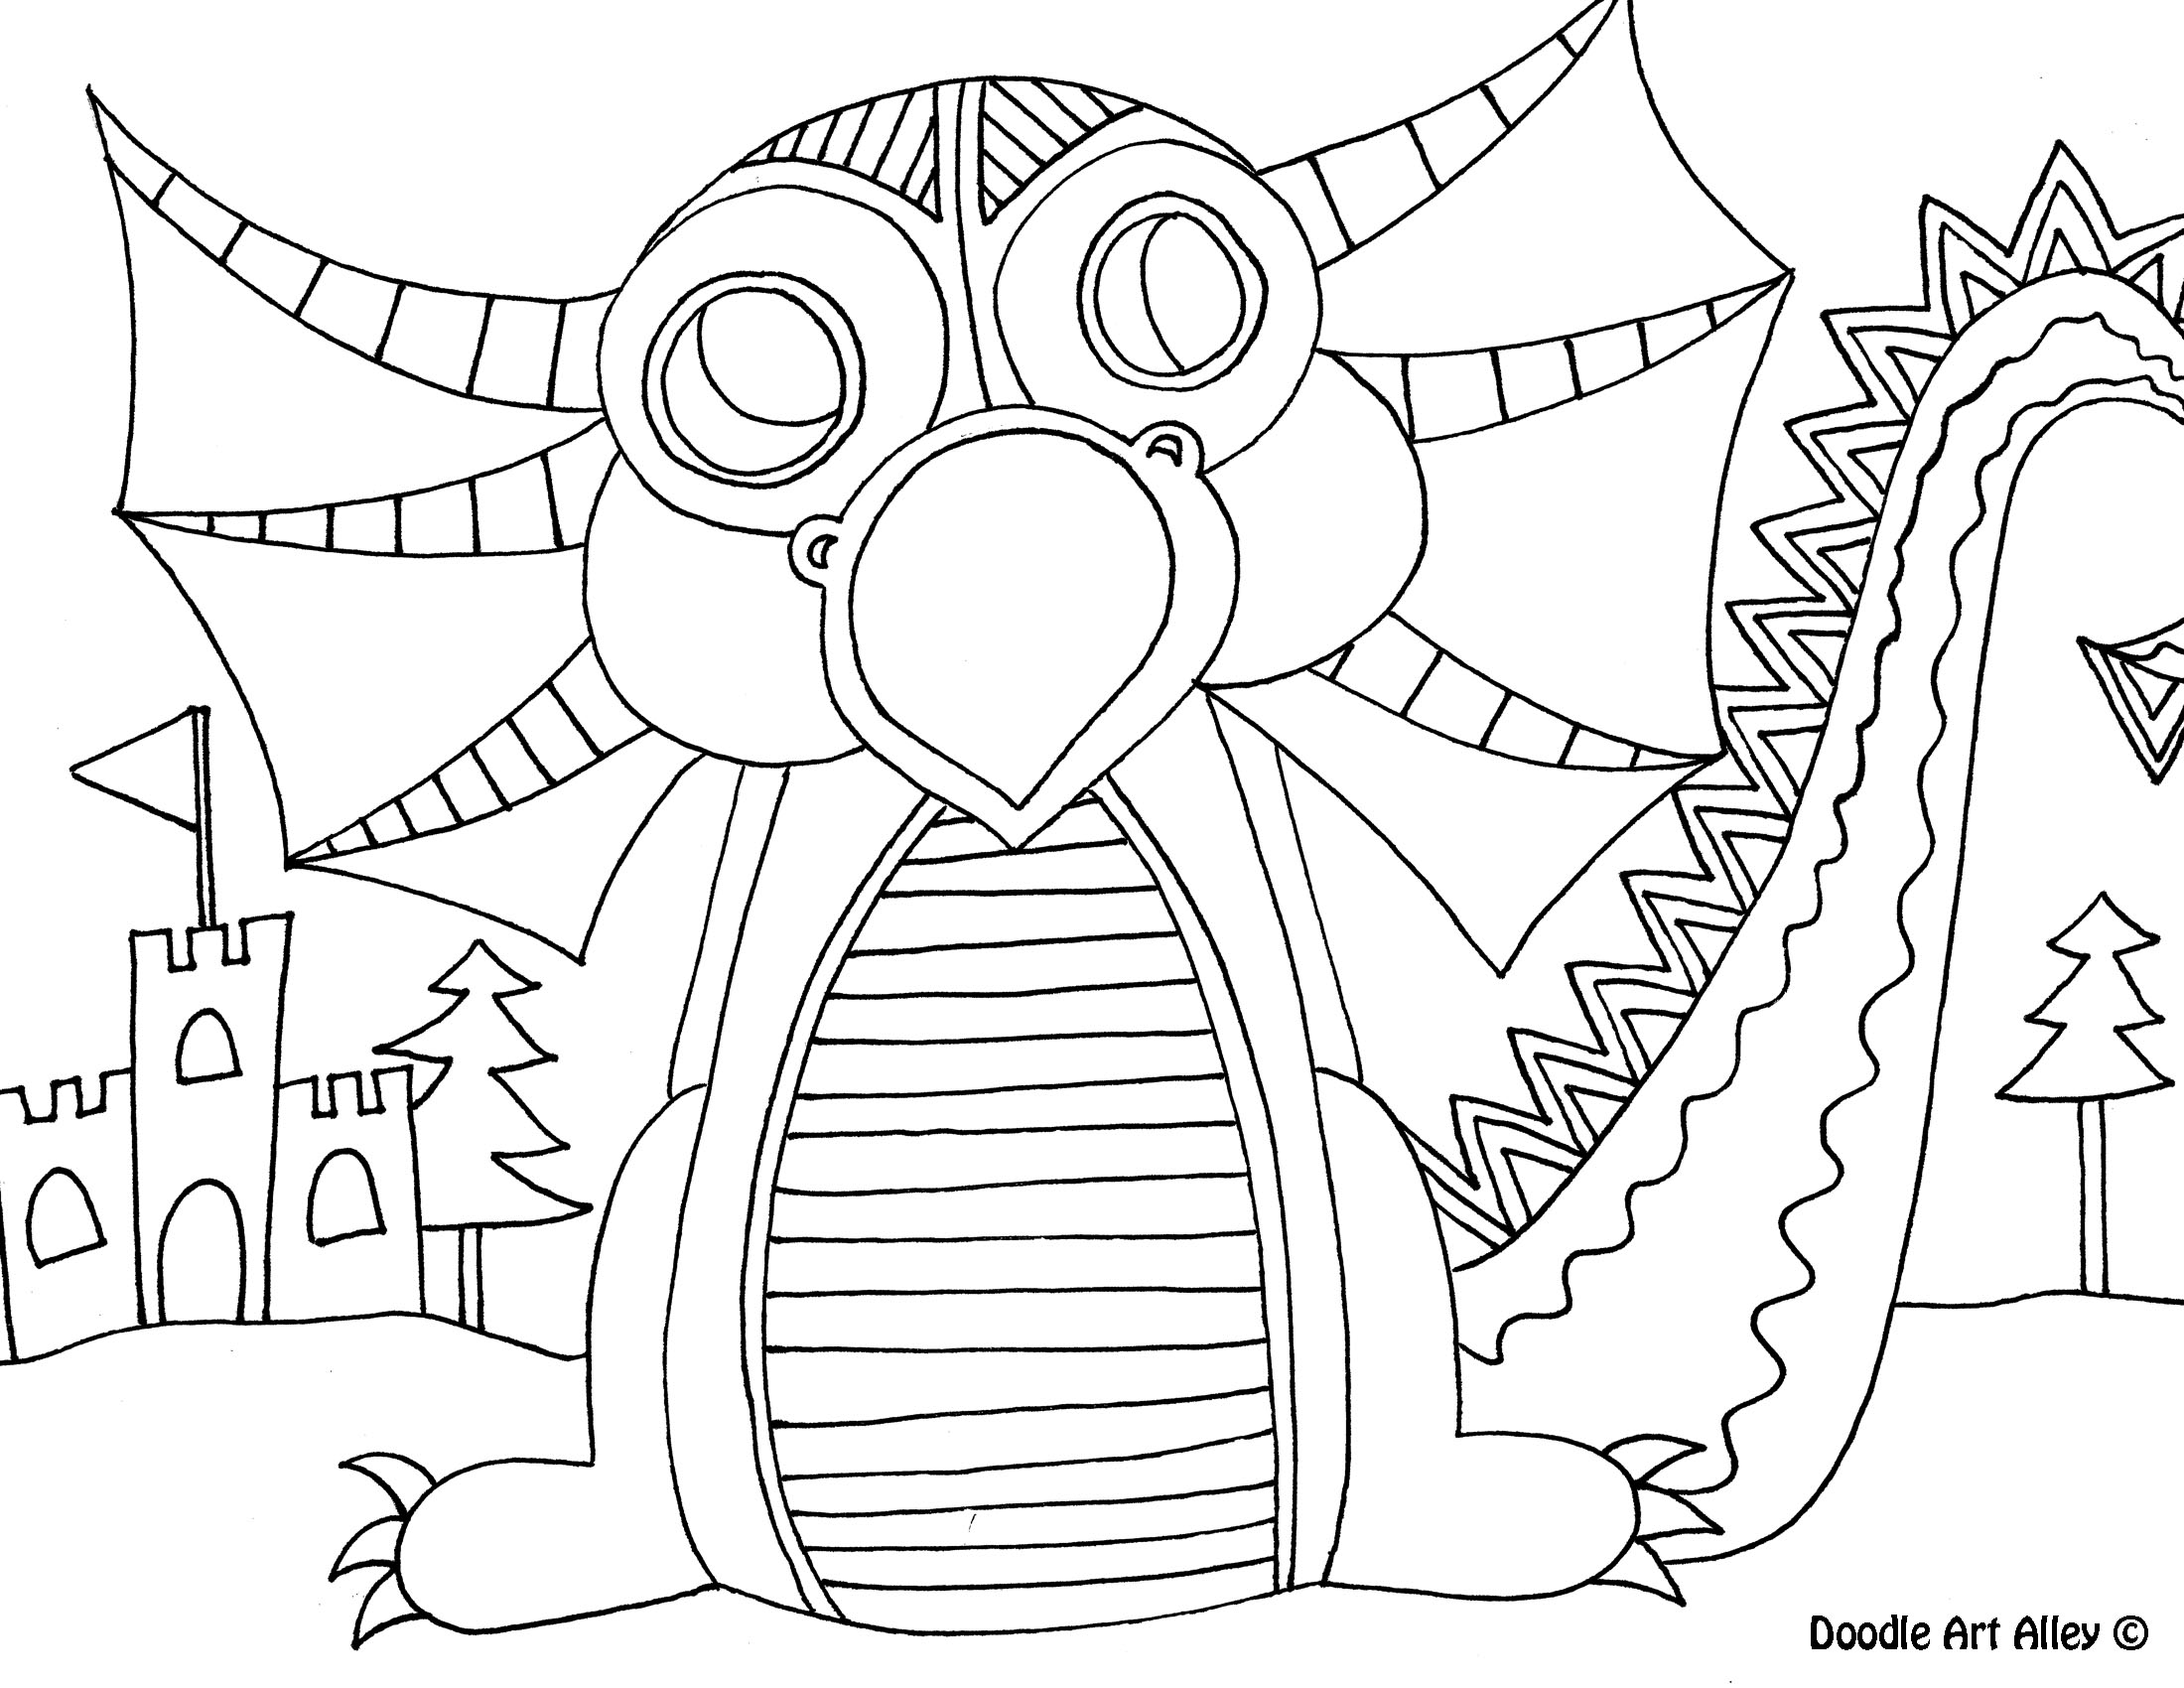 mythical creatures coloring pages - doodle art alley - Mythical Creatures Coloring Pages